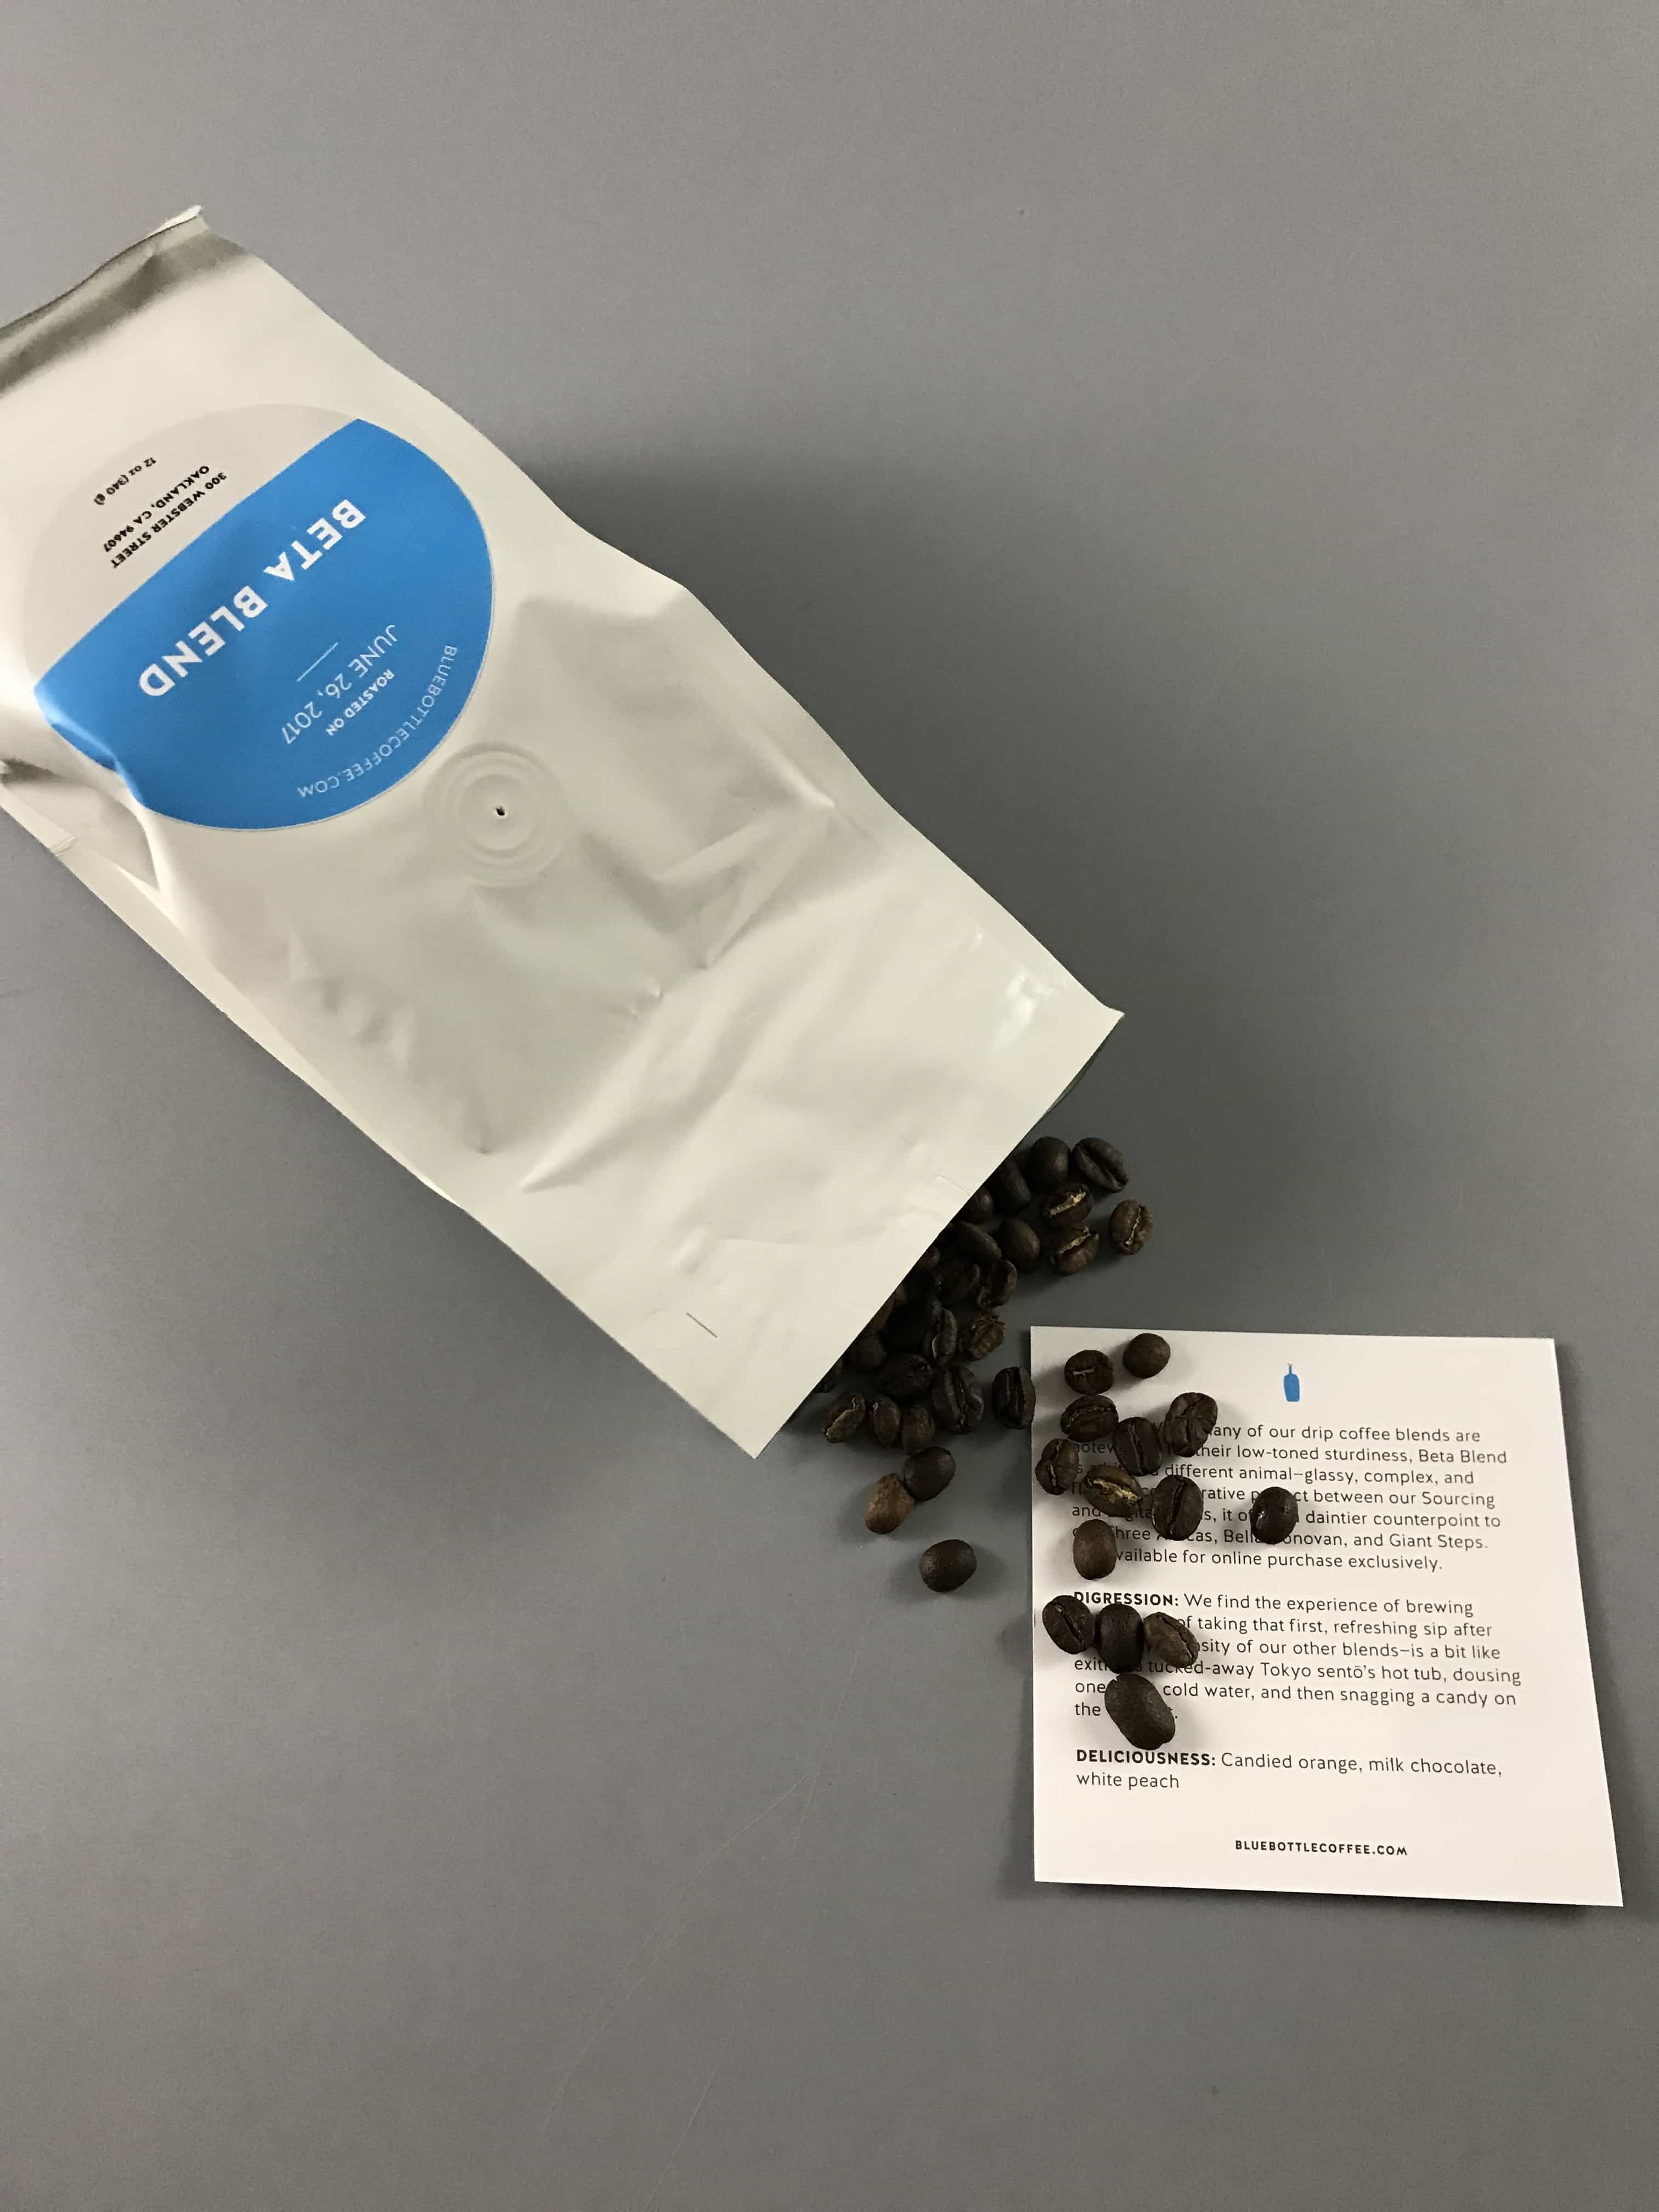 Best Flavor Of Blue Bottle Coffee For French Press